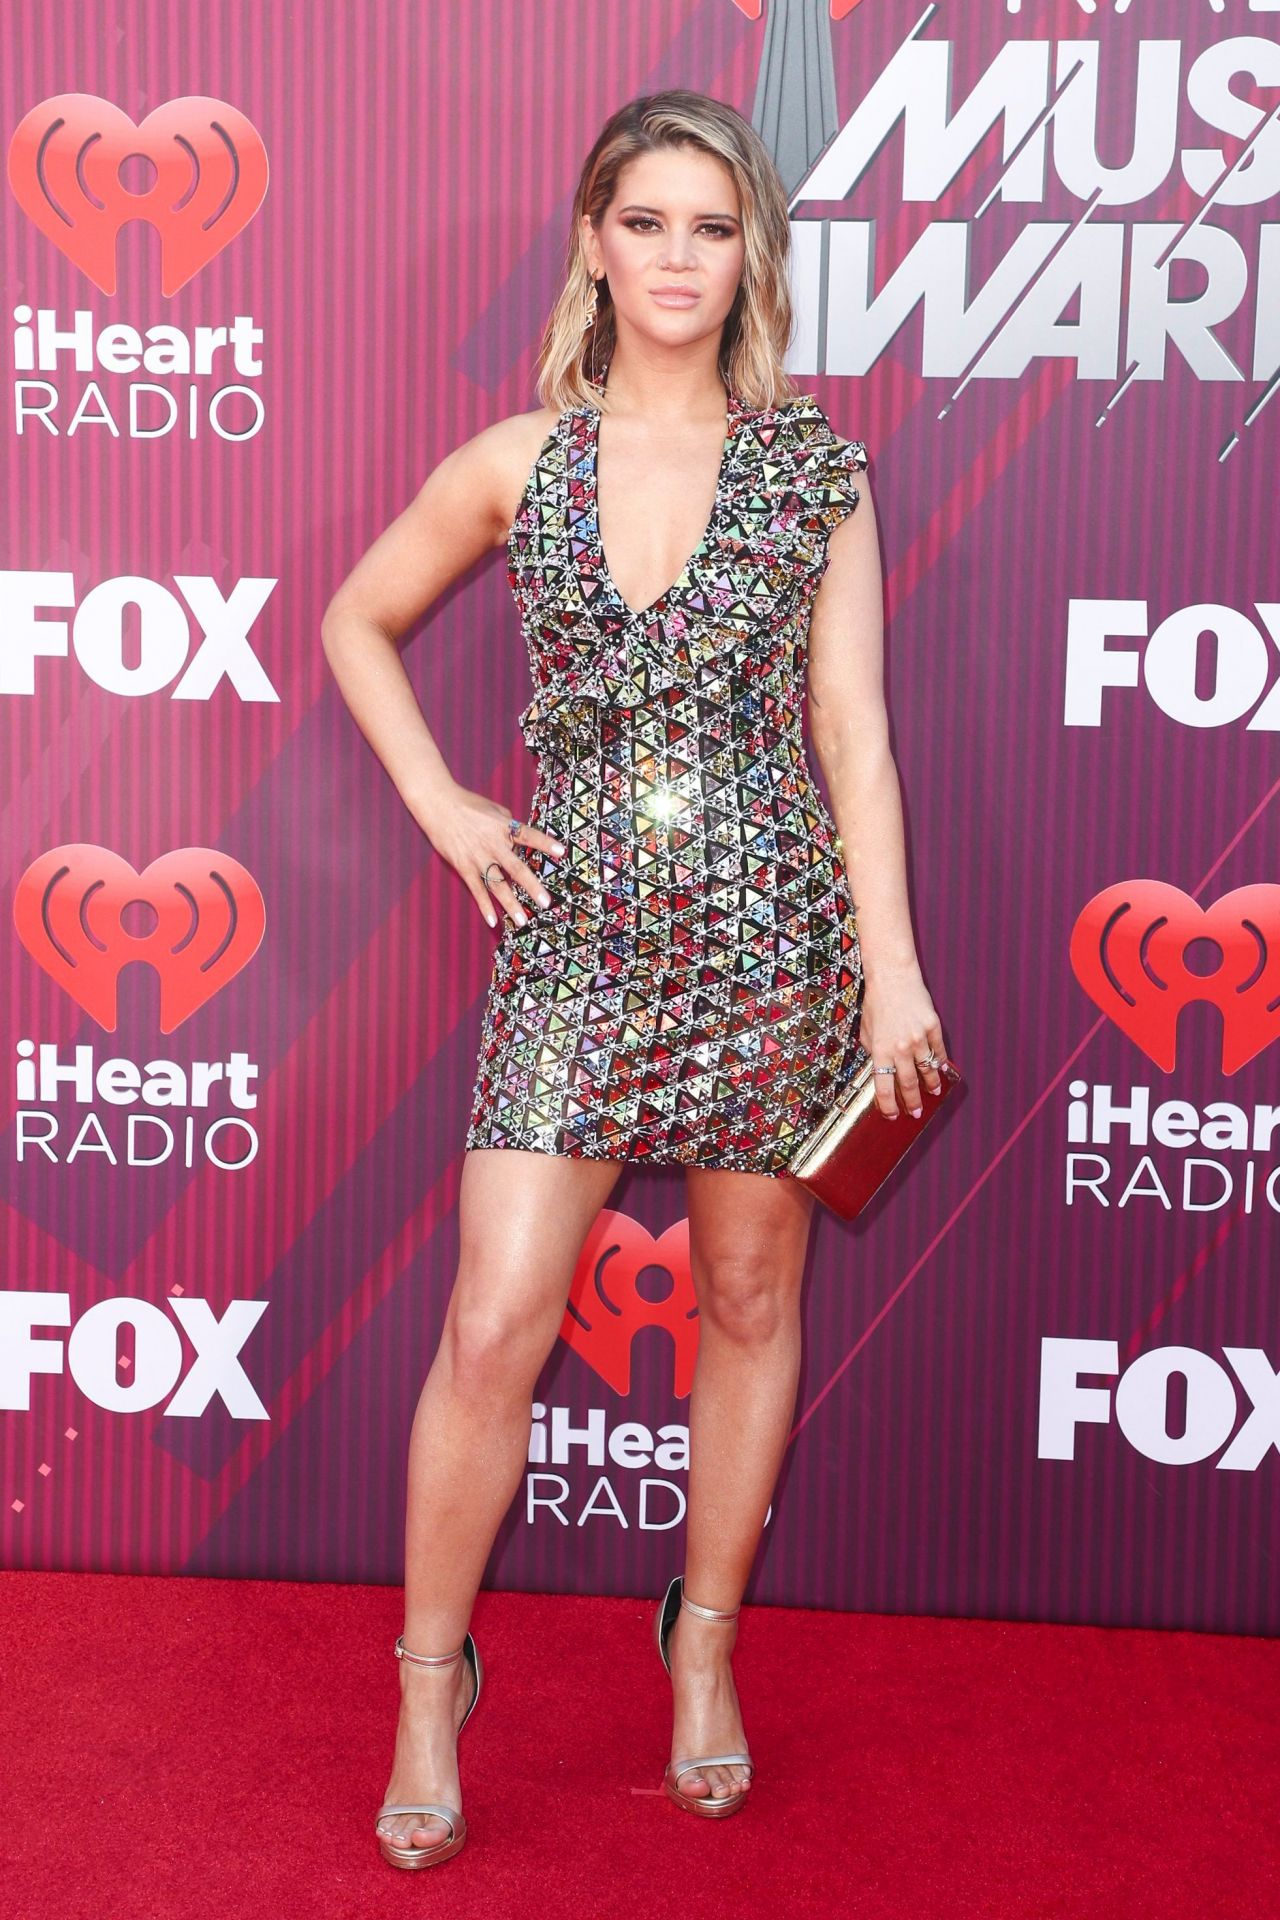 Maren Morris gorgeous at iHeartRadio music awards